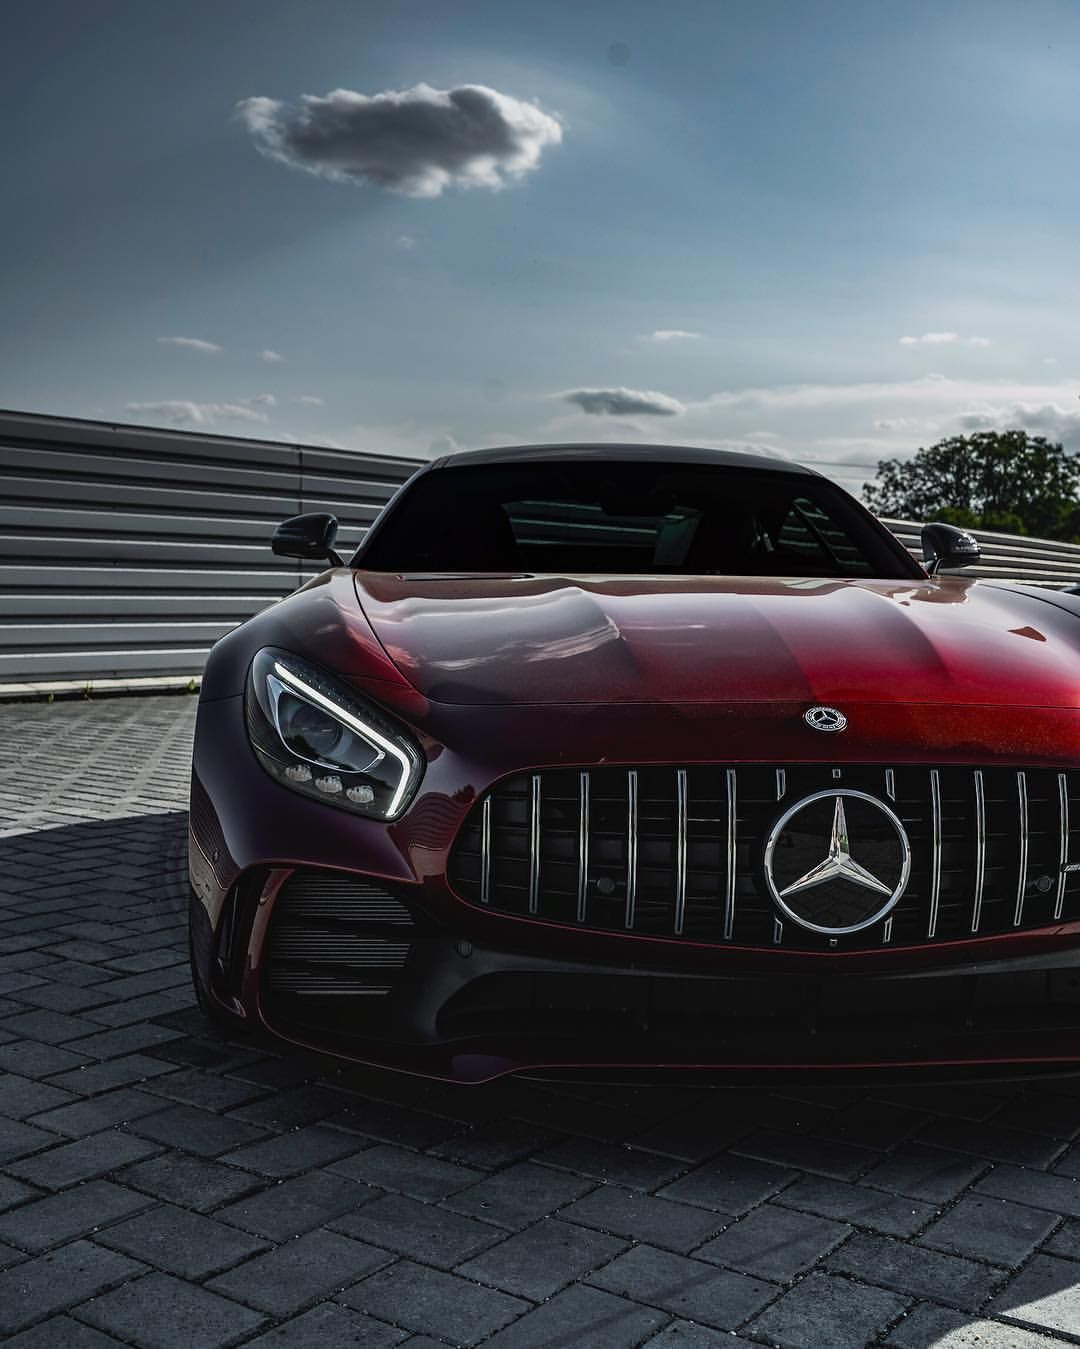 Gucci Benz >> Instagram 上的 Z E D Keep The Snakes Away Unless They Gucci